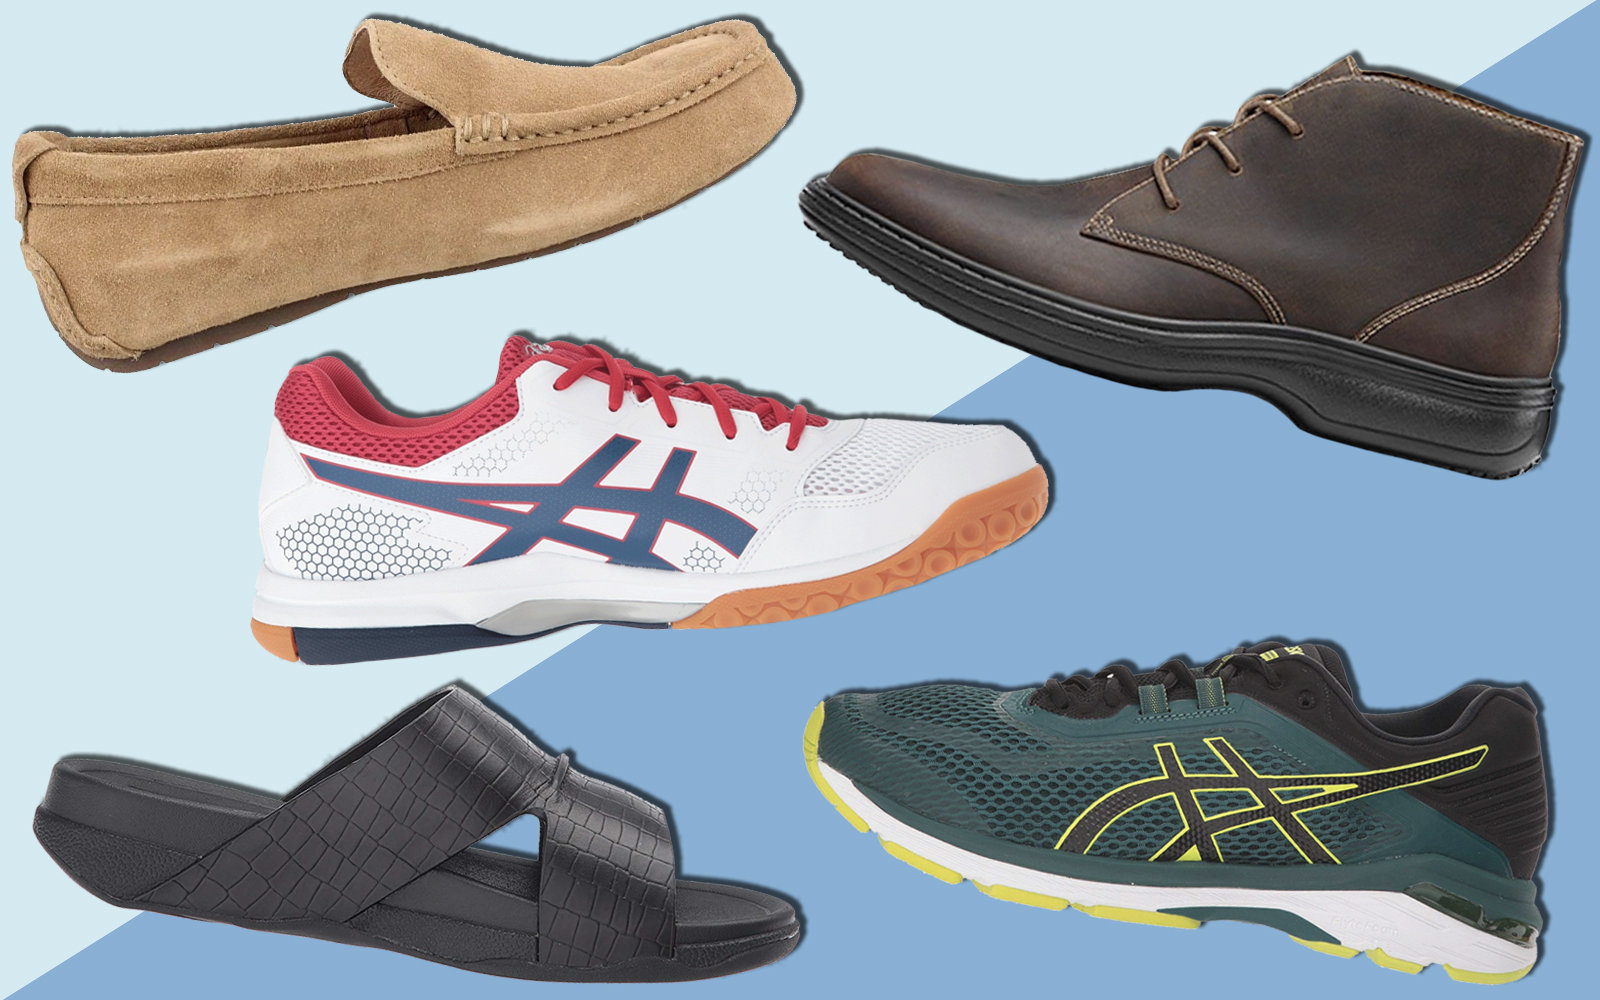 best-comfy-mens-shoes-APMA-seal-of-approval-APMAMENSSHOES1018.jpg